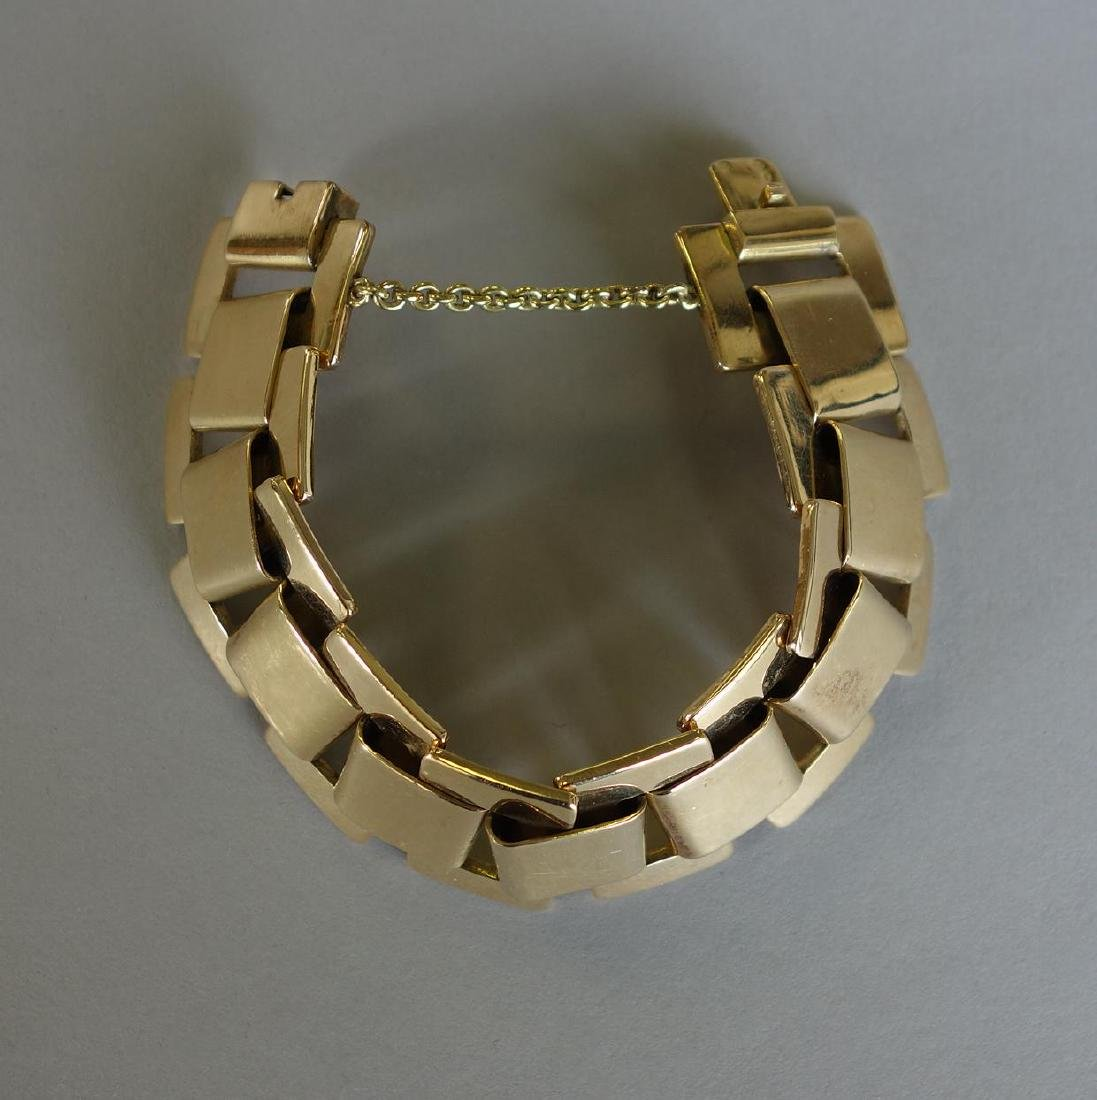 French 18K Gold Link Bracelet, 111.2 grams